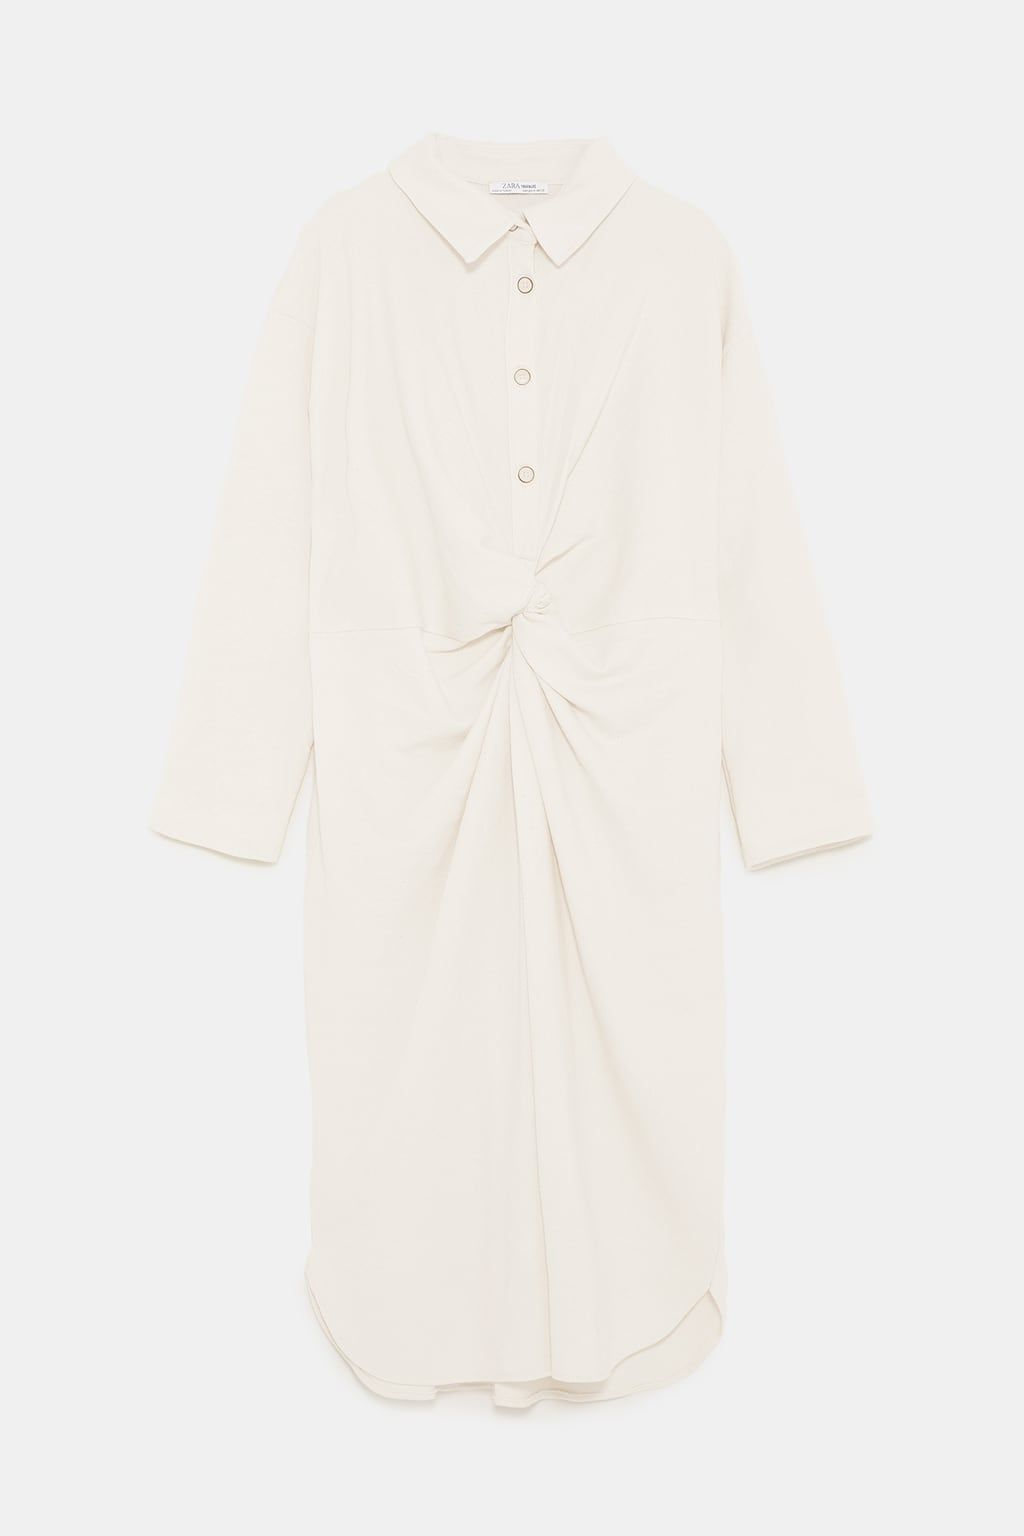 fe25acc036 Image 8 of KNOTTED SHIRT DRESS from Zara